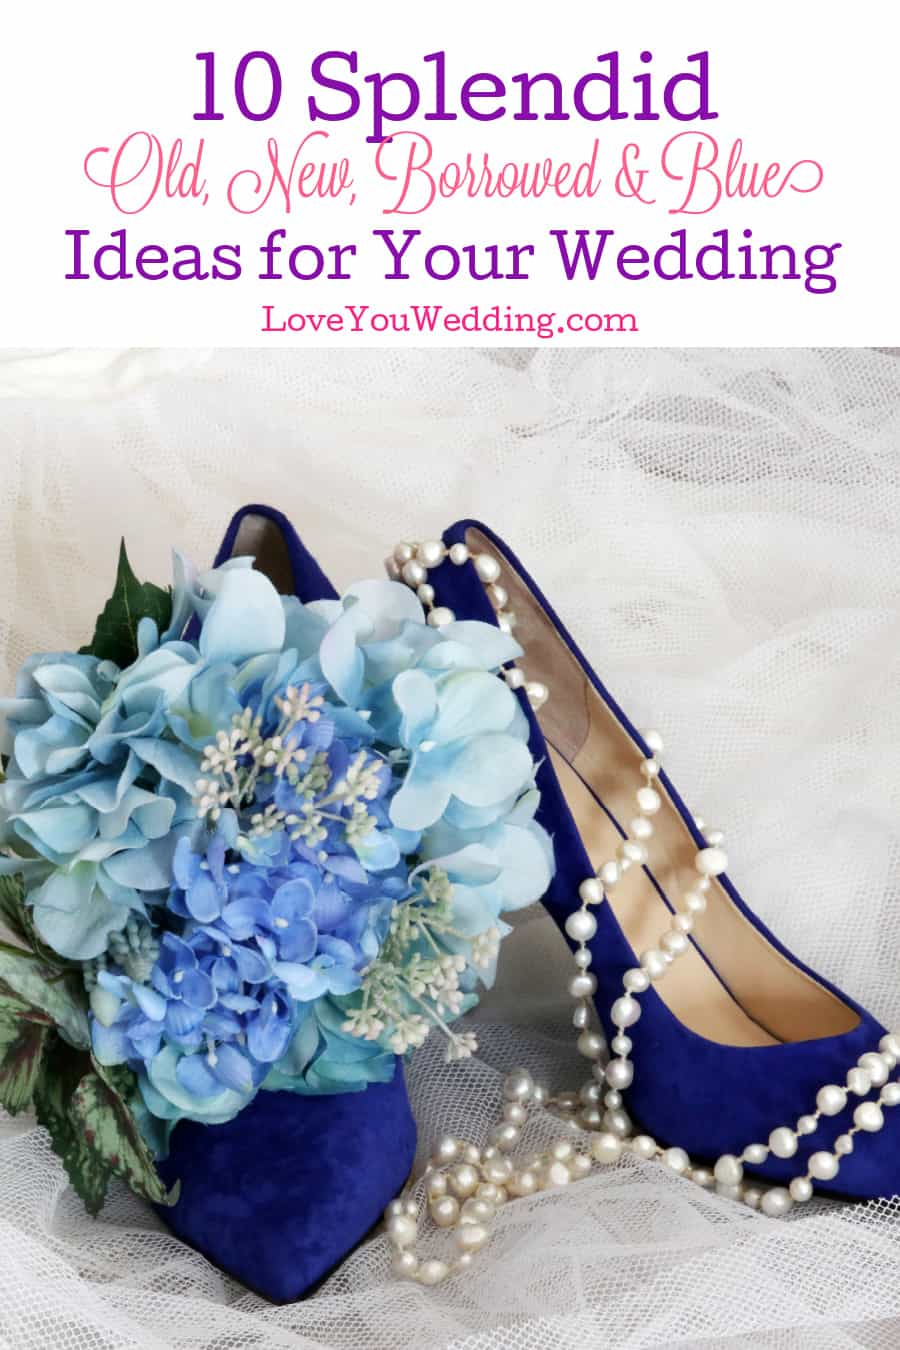 Need ideas for your something old, new, borrowed, or blue wedding items? Check out some that we are just madly in love with!